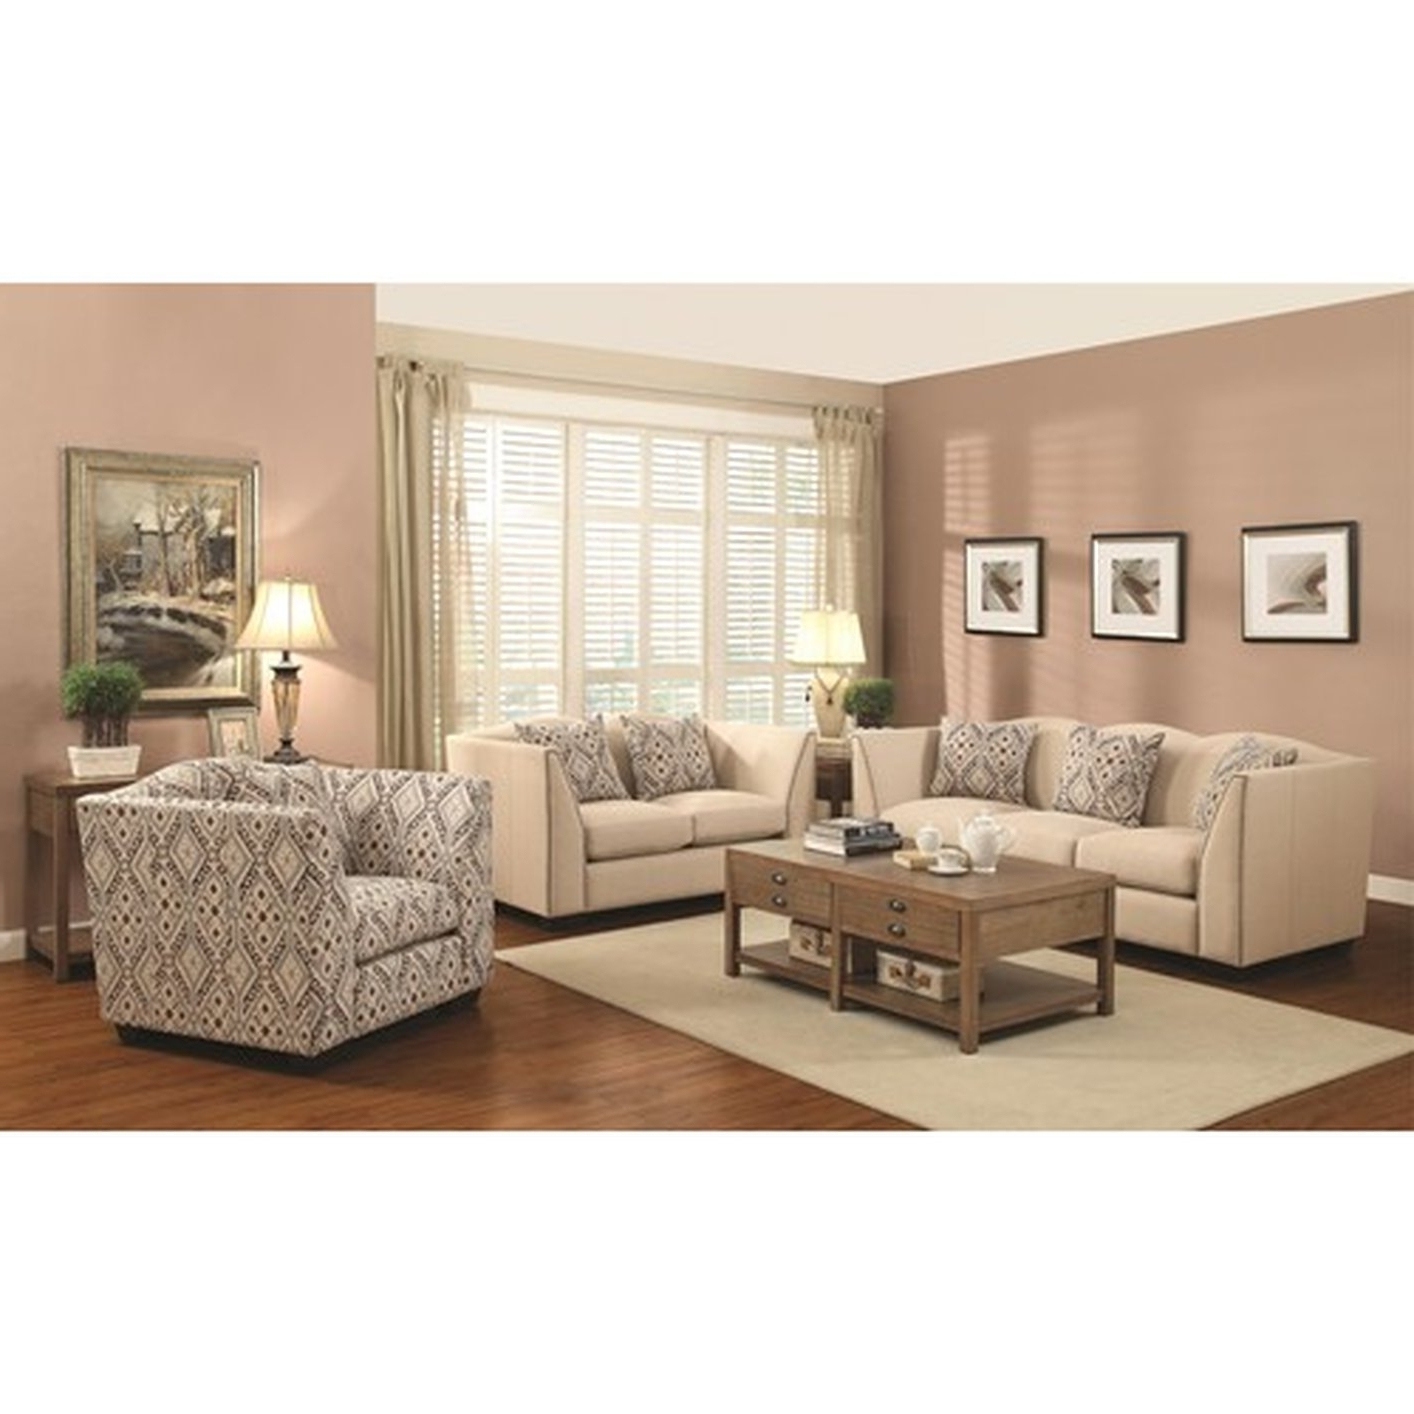 Preferred Accent Sofa Chairs Pertaining To Siana Beige Fabric Accent Chair – Steal A Sofa Furniture Outlet (View 12 of 15)